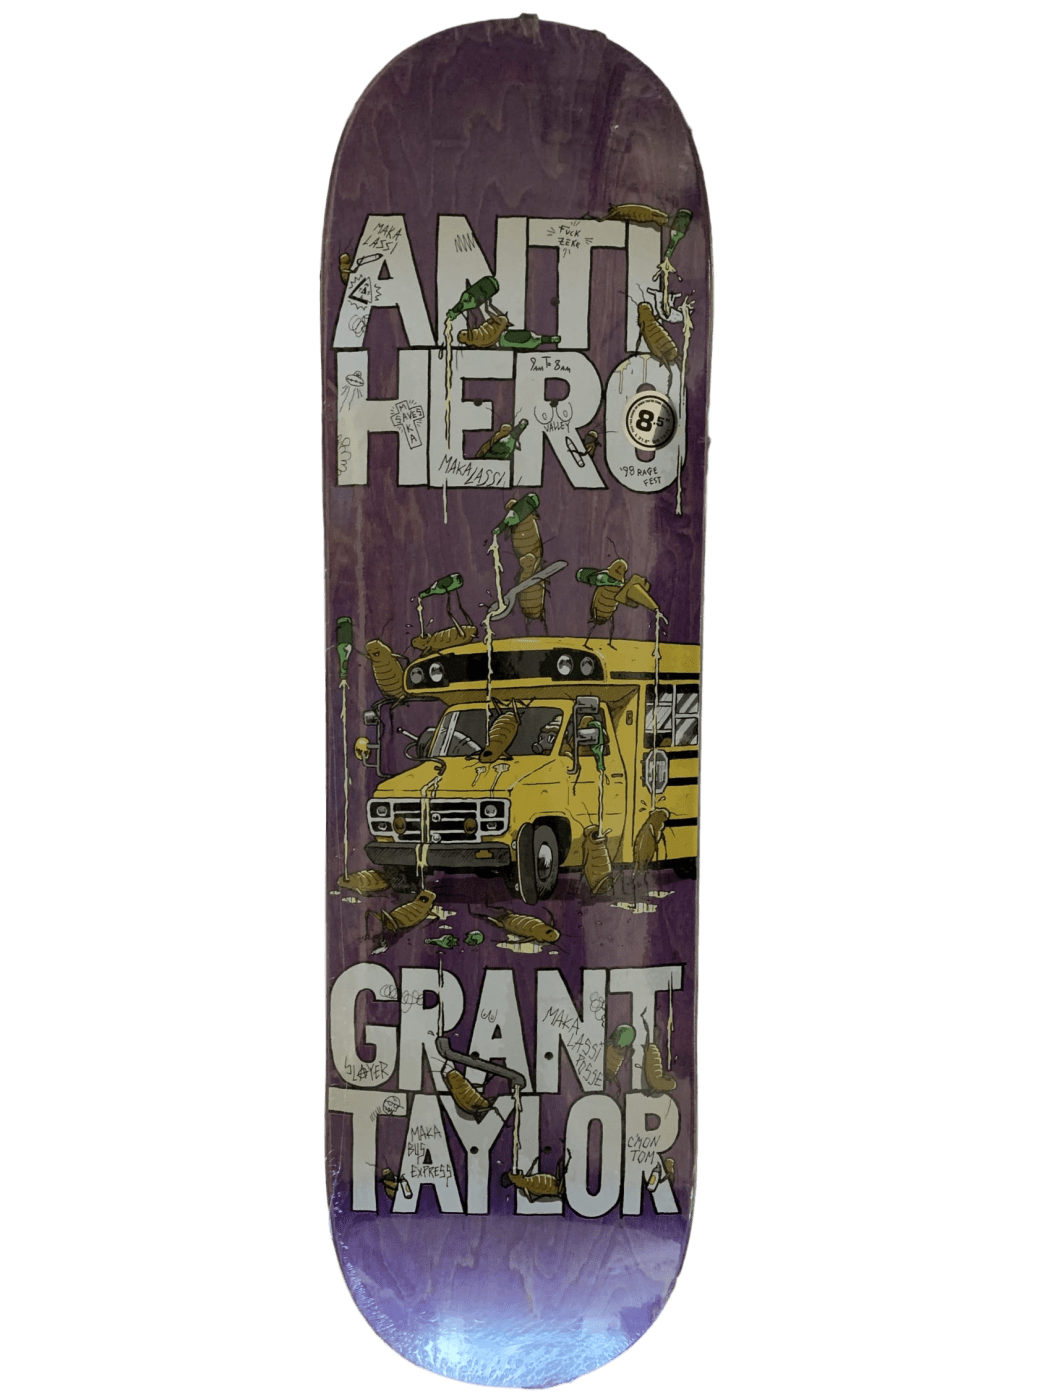 Antihero Grant Taylor Maka Bus Skateboard Deck - 8.5"